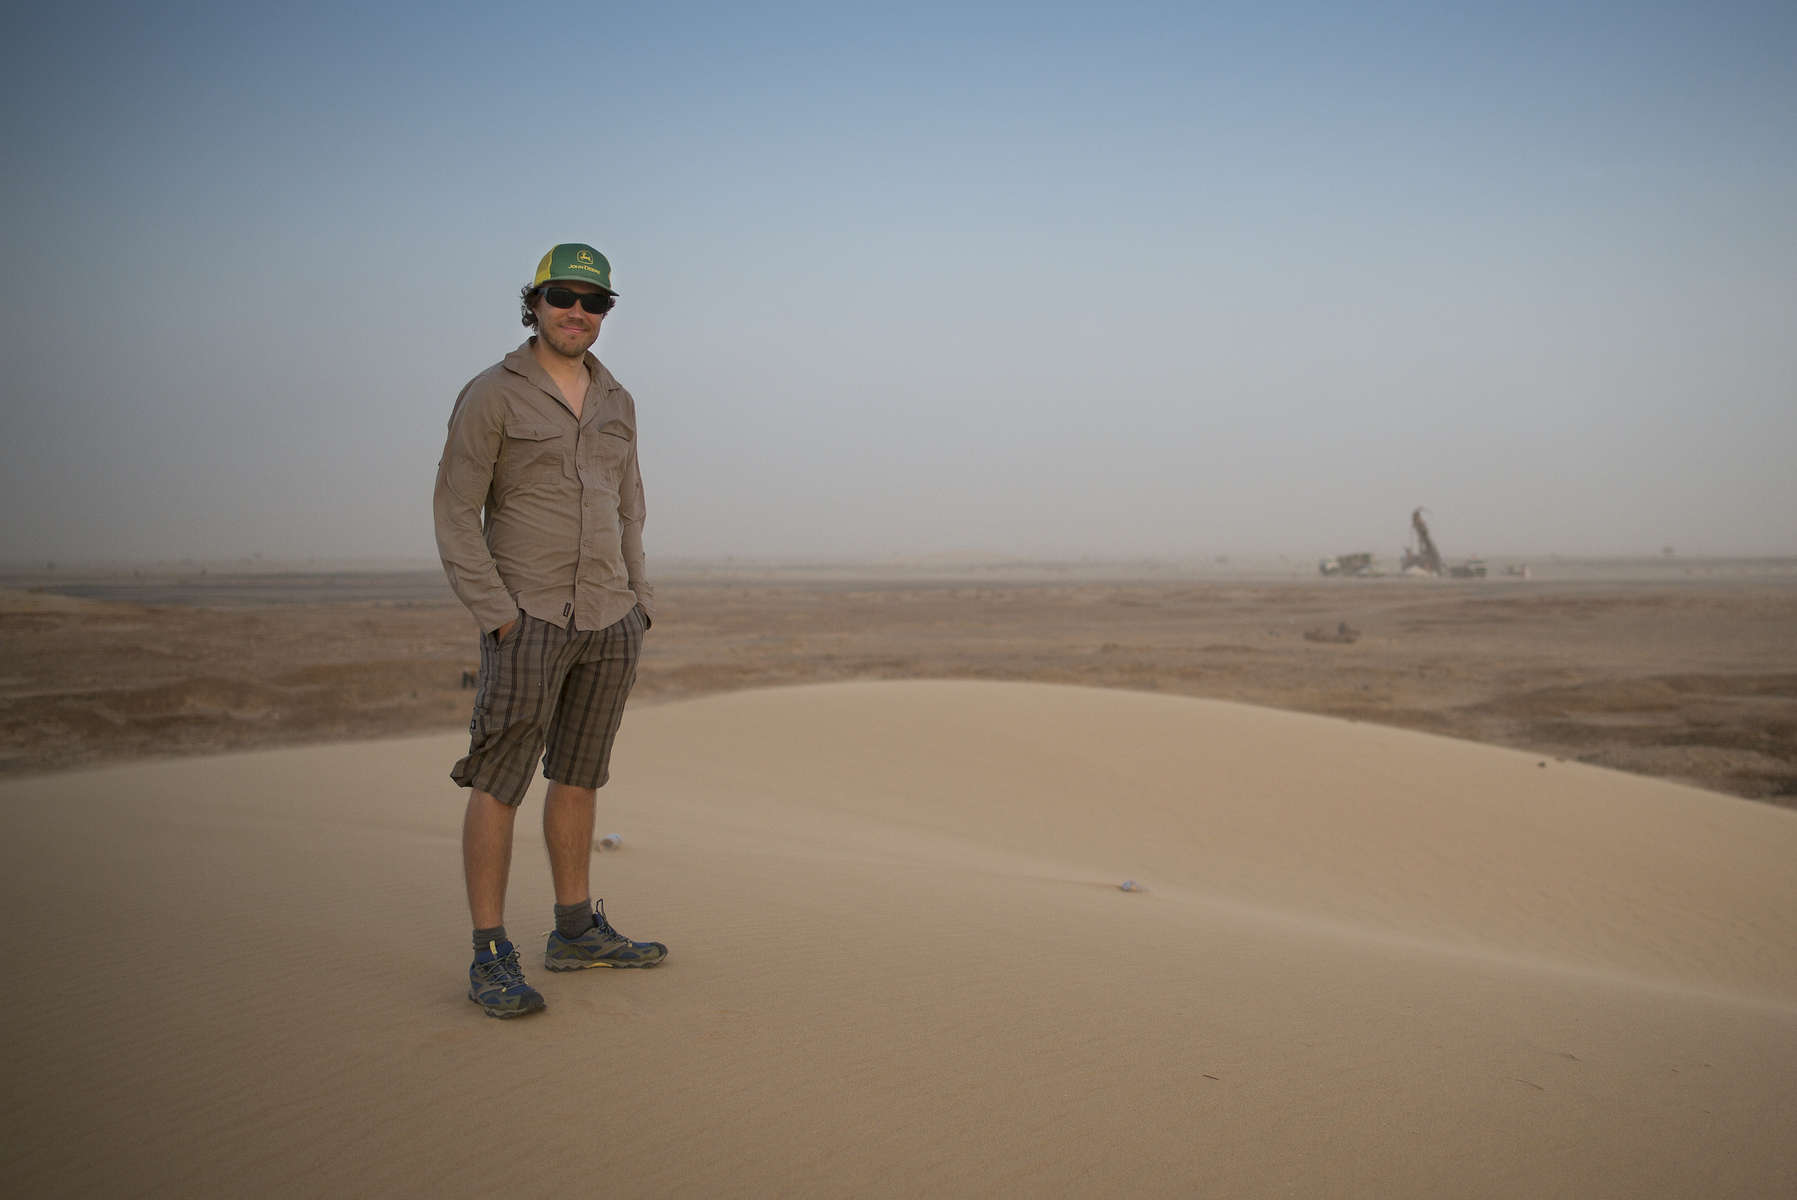 AlGold Resources LTD Geologist Alastair Gallaugher stands on the sand dune while in a distance the reverse circulation drilling rig can be seen. Tijirit, Mauritania.The Tijirit Project is Algold Resource's Flagship property in Mauritania located within the Inchiri Region, 4 hours drive north of the Capital Nouakchott.  Exploration is currently underway throughout the property with the aim to increase mineral resources from the current Ni 43-101 compliant mineral resource of 28,930 ounces at a grade of 1.75 g/t Au (M&I) and inferred resources of 241,560 ounces at a grade of 1.71 g/t Au at a cut-off grade of 1.0 g/t Au